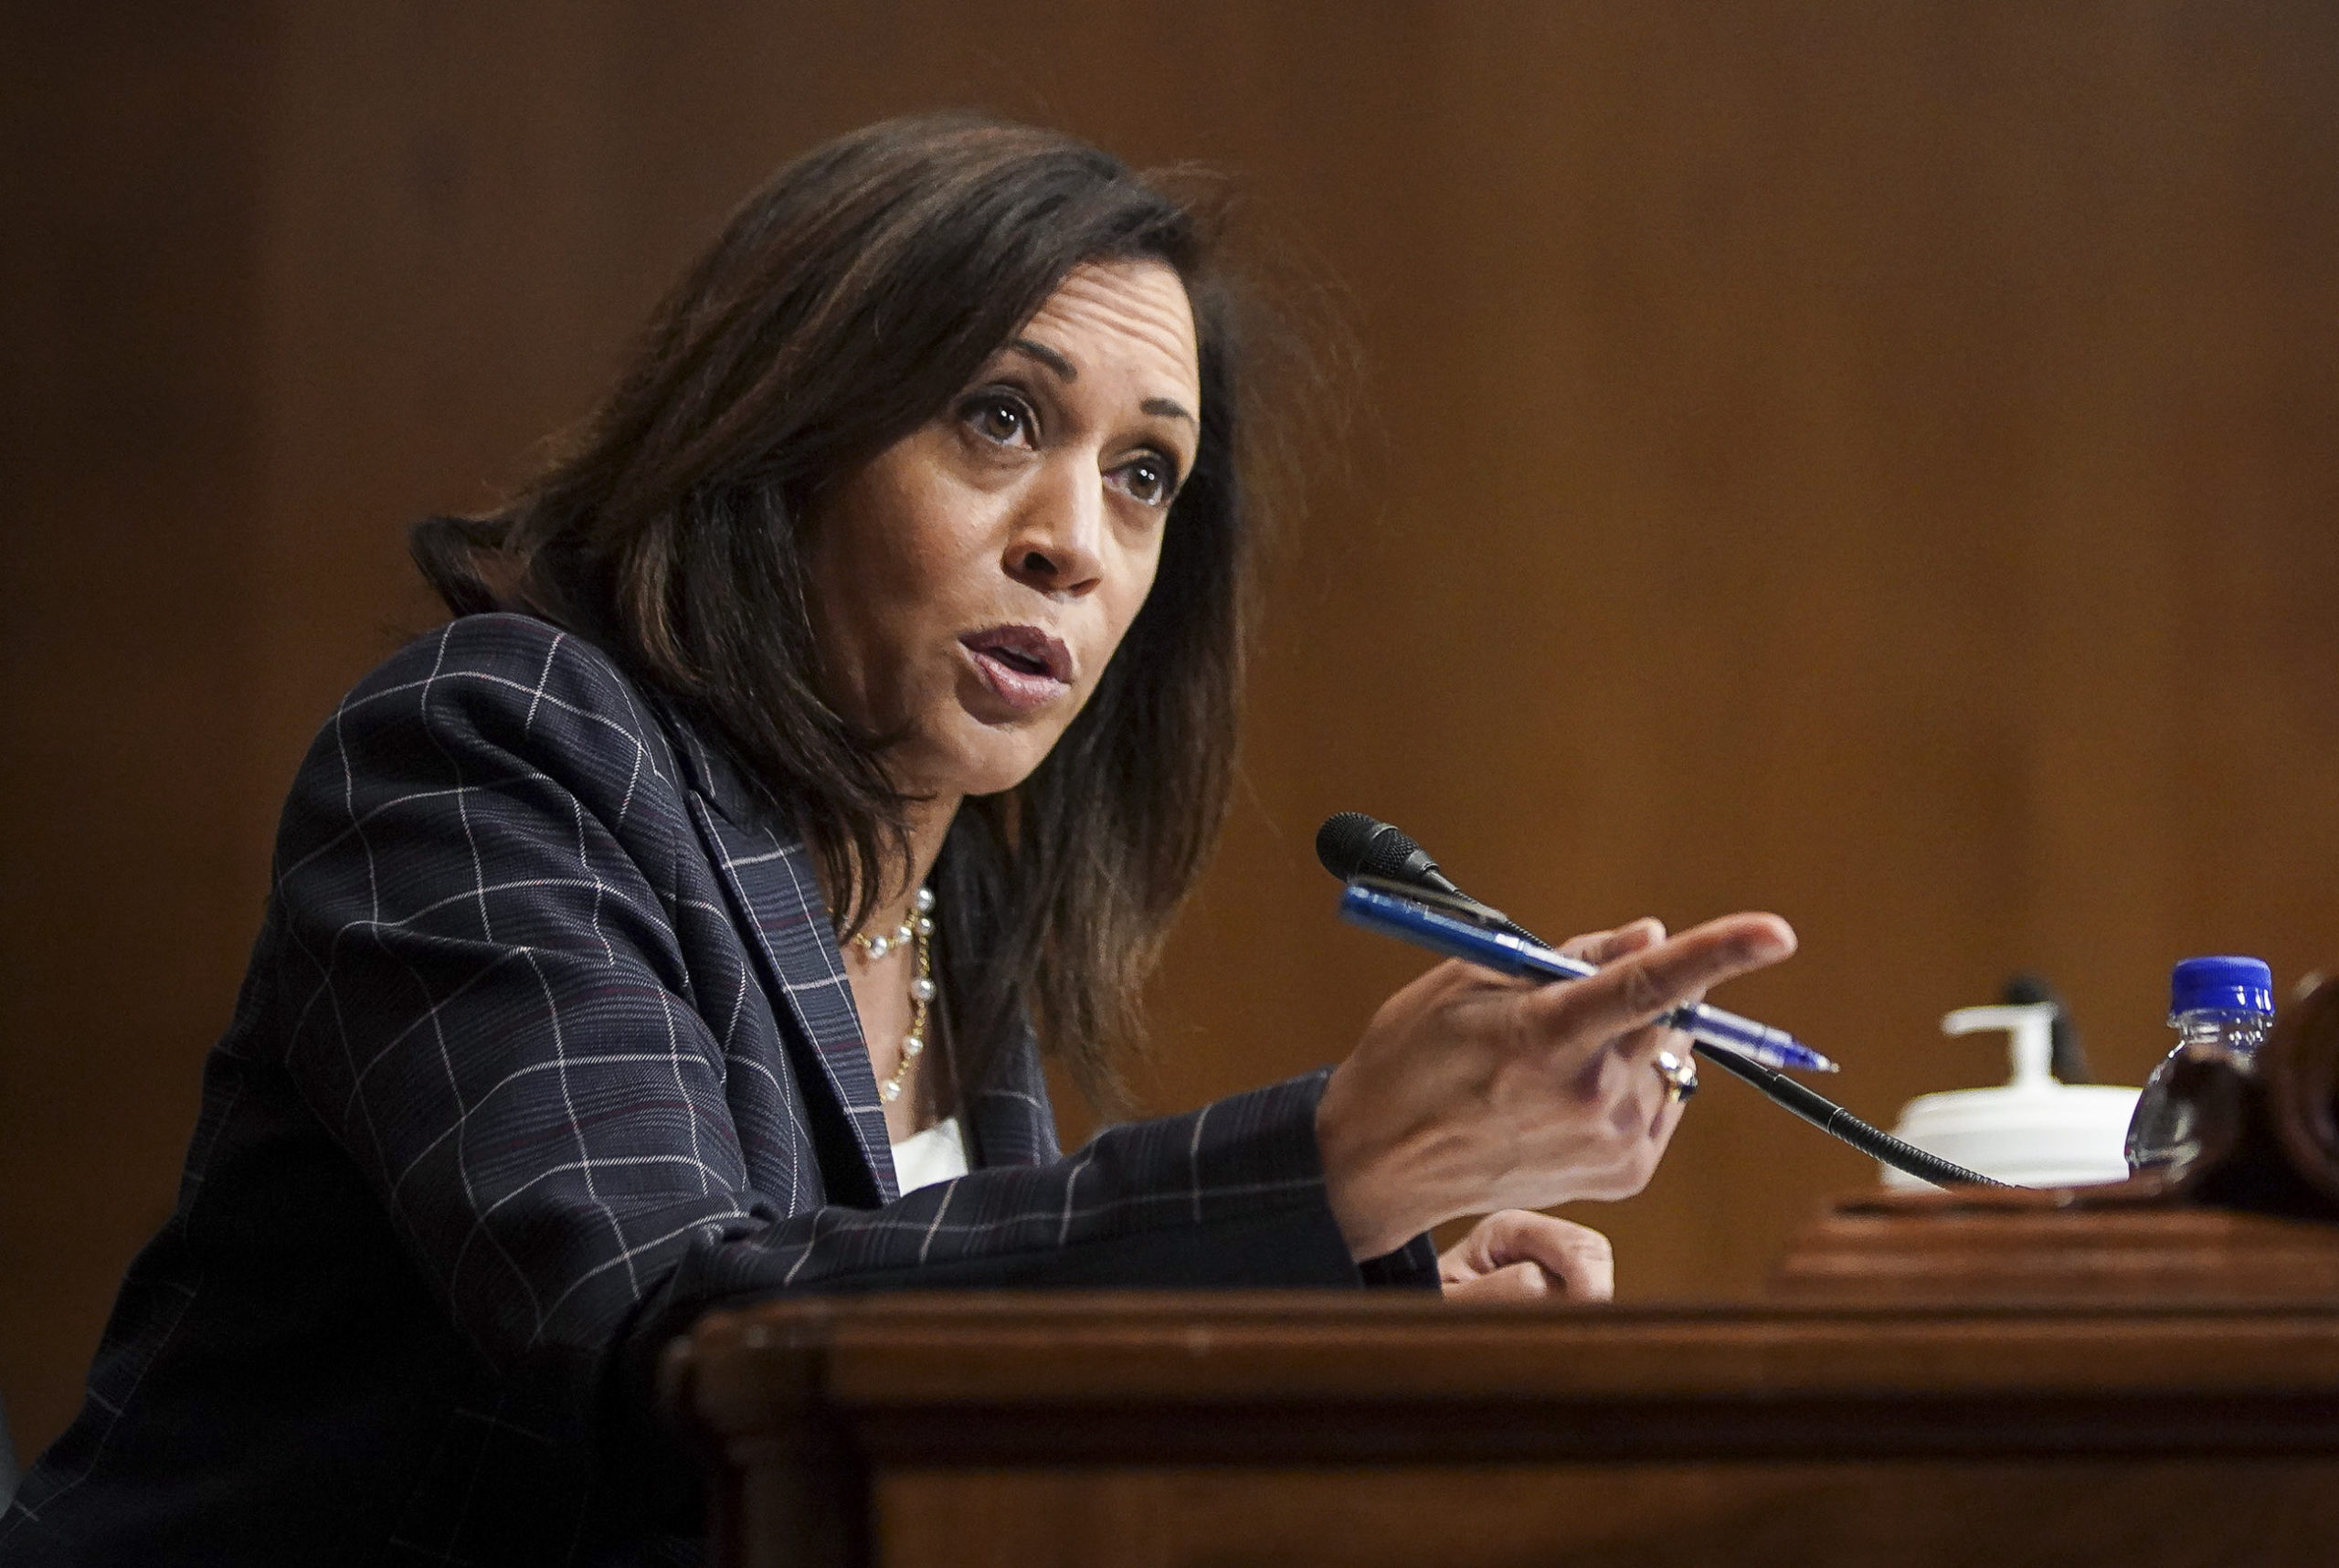 U.S. Sen. Kamala Harris (D-CA) speaks at a hearing of the Homeland Security Committee attended by acting U.S. Customs and Border Protection (CBP) Commissioner Mark Morgan at the Capitol Building on June 25, 2020 in Washington, DC. (Photo by Alexander Drago-Pool/Getty Images)